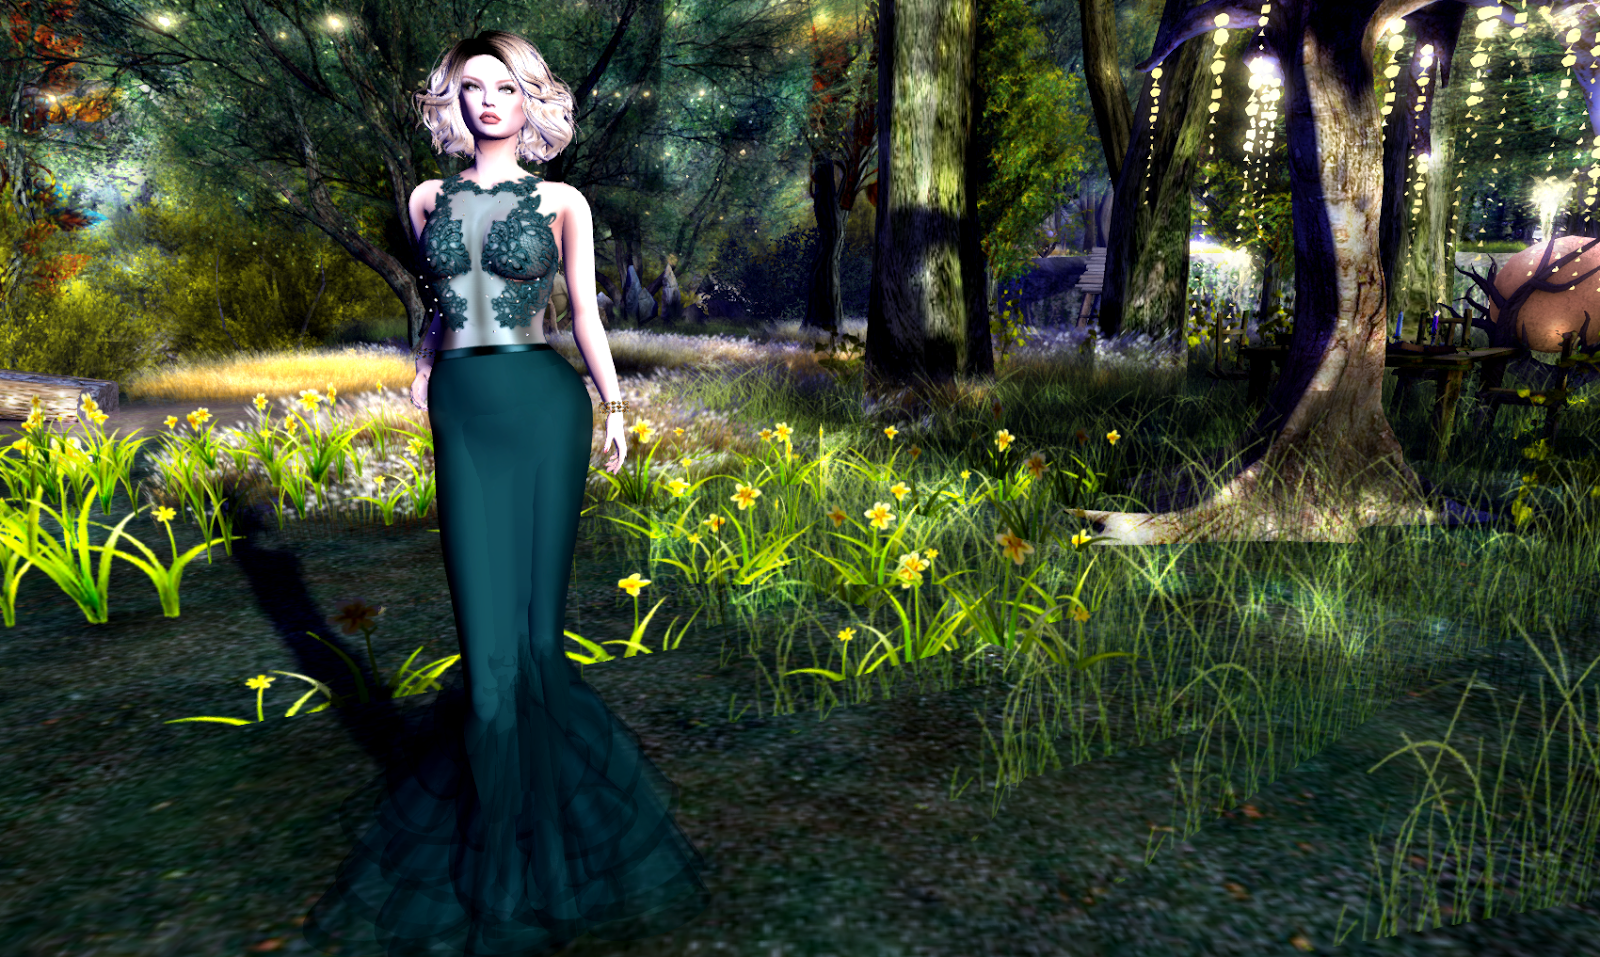 Sl Fo The Fashion Blog 1016 Kim Angelica Chocker Hole Dress Broken White Gown Flowerdreamsaveline Cyan 50off Offering During Week Hair Prtty Yeemi All Color Huds Previous Hunt